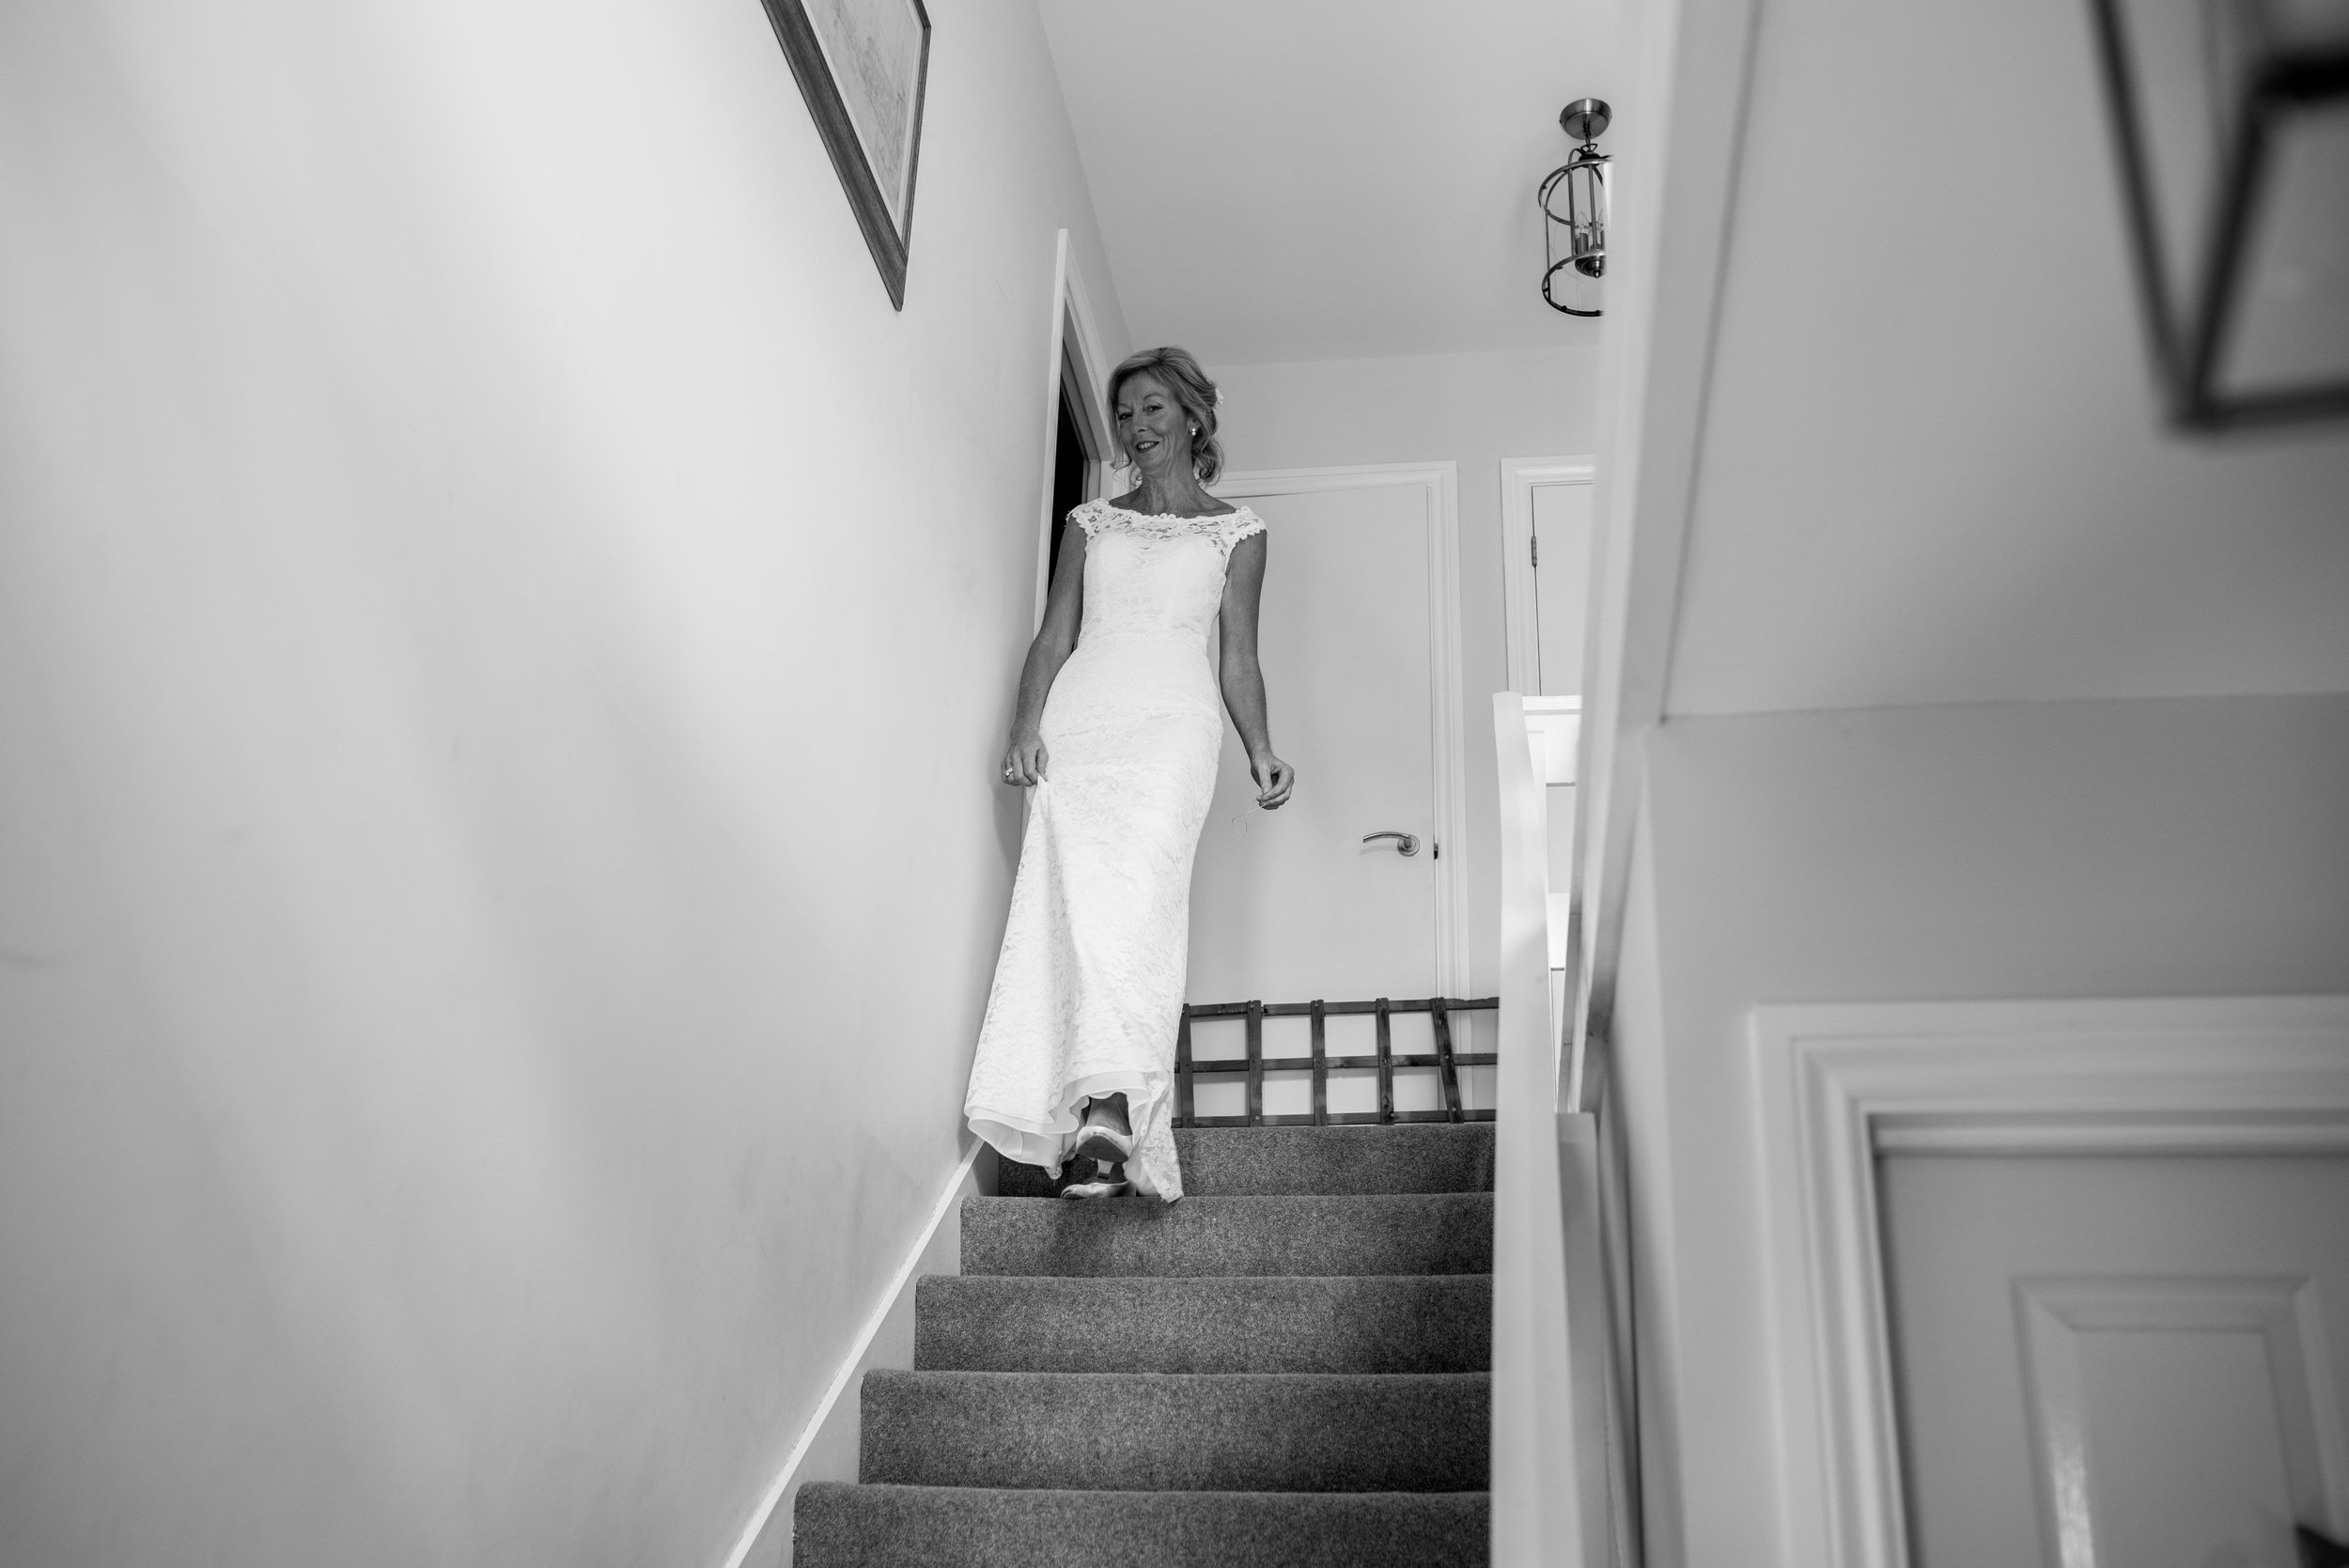 The bride makes her way down the stairs